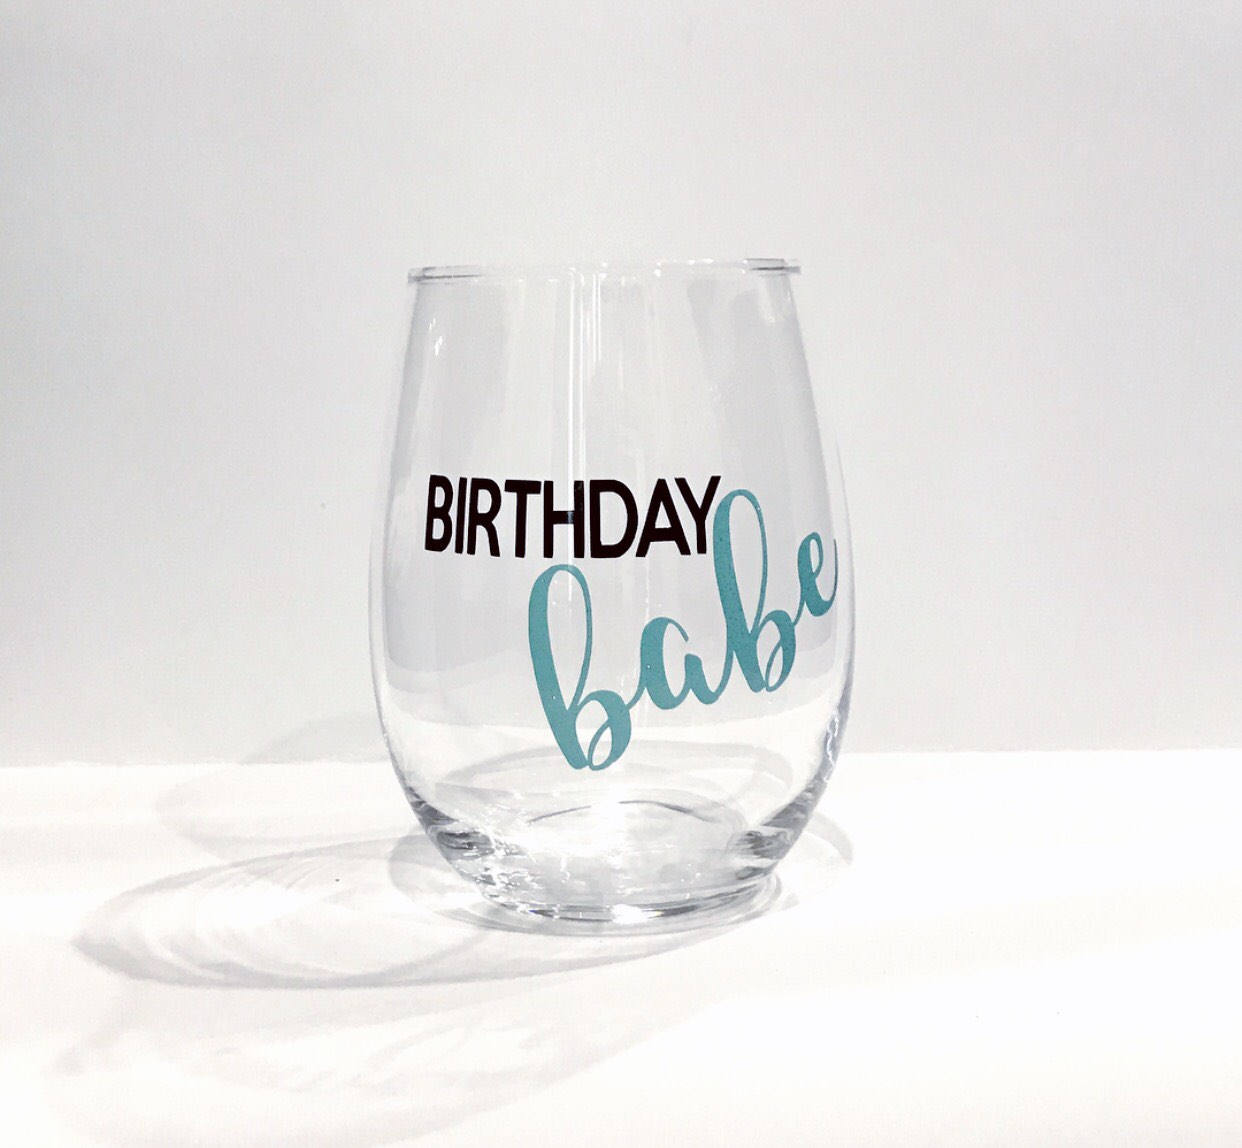 Birthday babe stemless wine glass/ birthday gift/ custom glass/ personalized glass/ girlfriend gift/ birthday glass